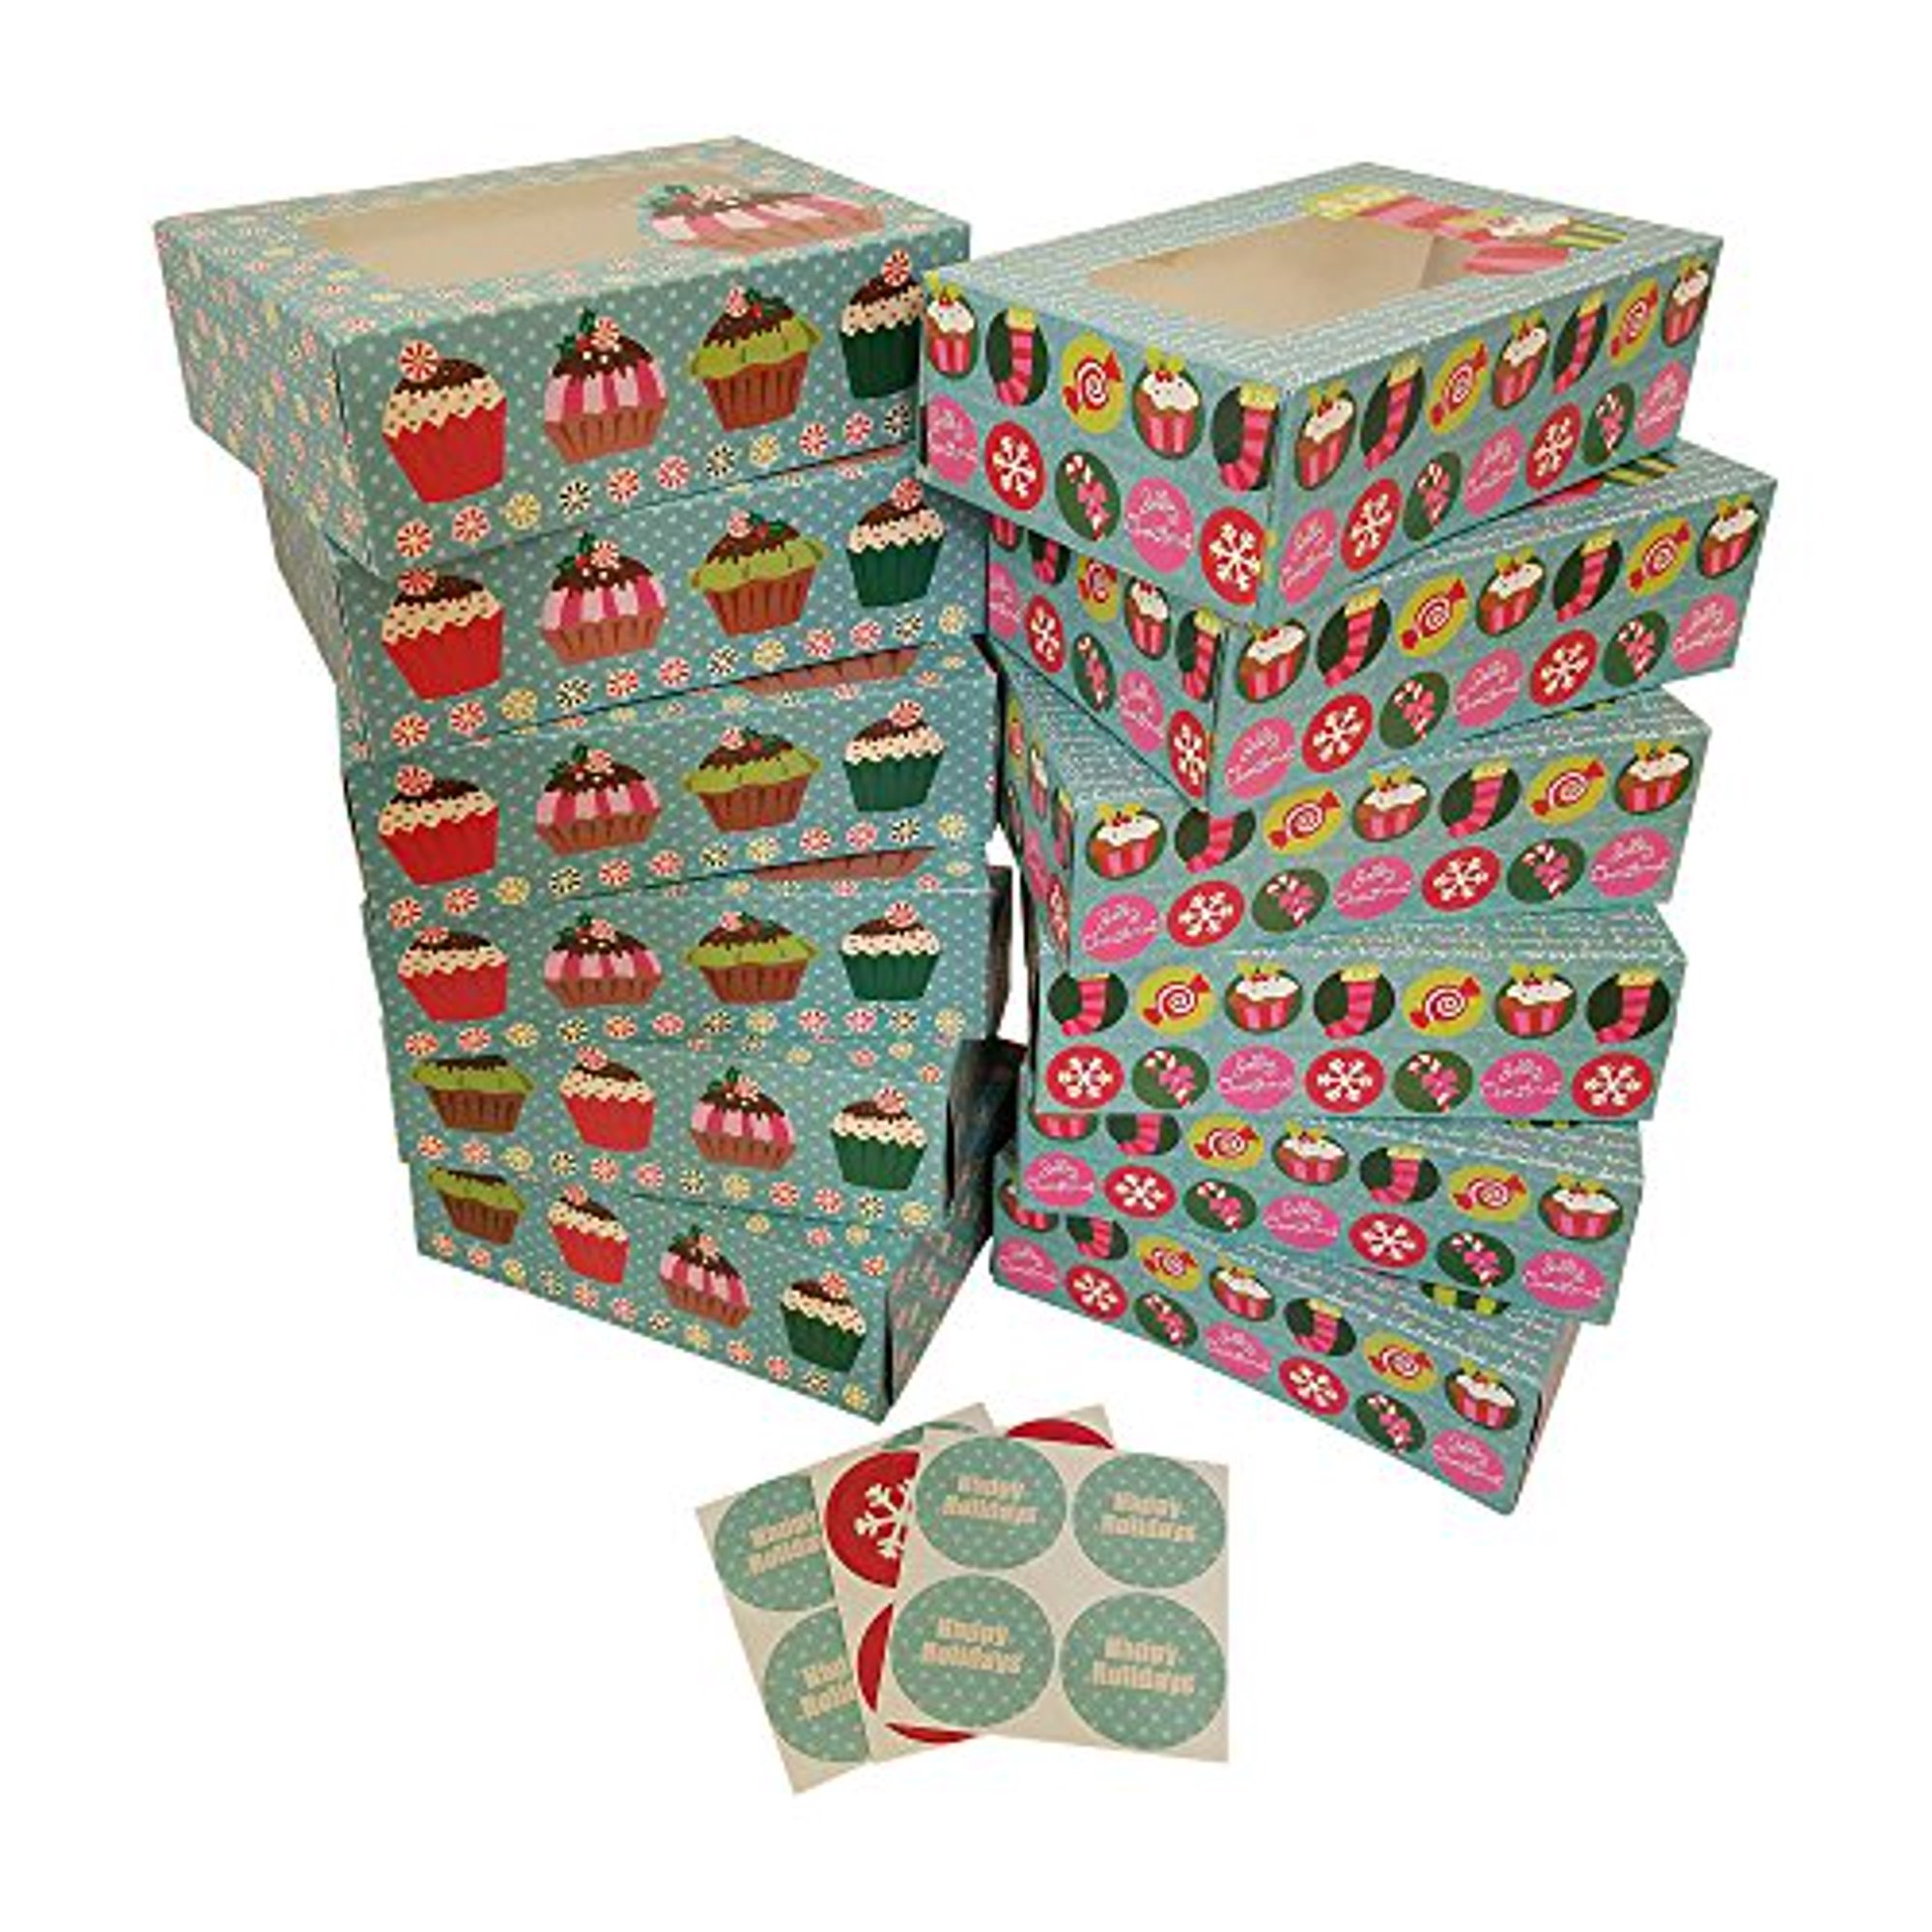 Christmas Cookie Gift Boxes Rectangular With Clear Window Colorful Paperboard With Holiday Designs Set Of 12 With 12 Stickers For Sealing Blue Cupcake Walmart Canada